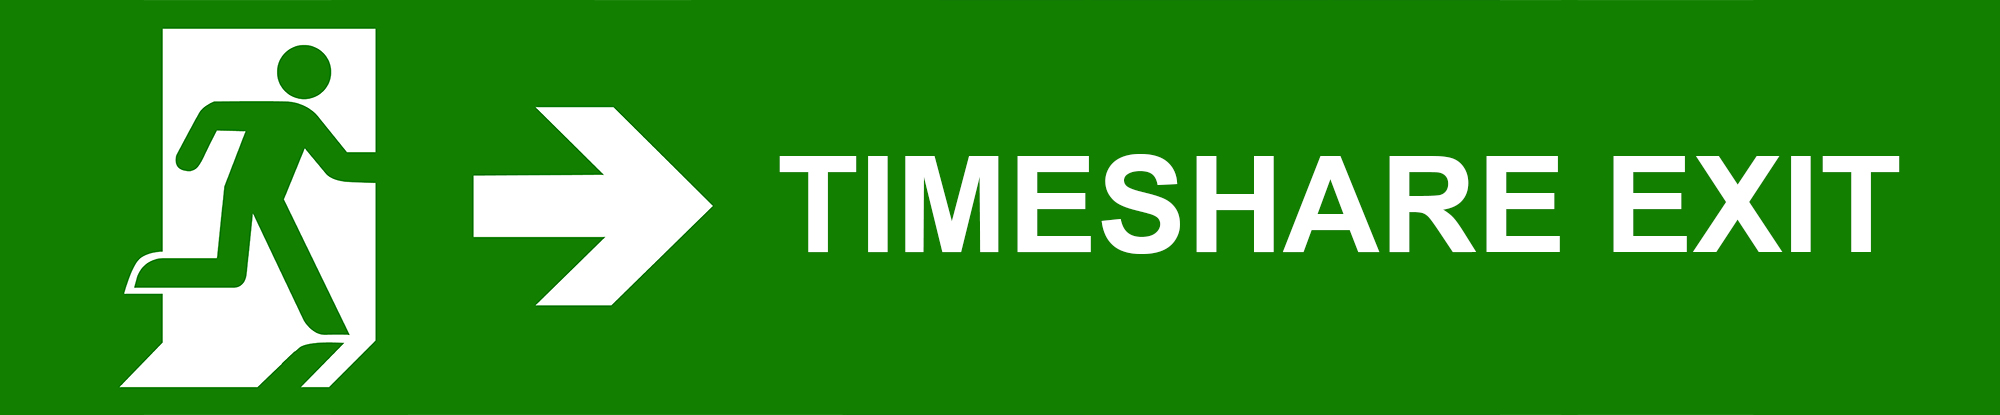 timeshare-exit